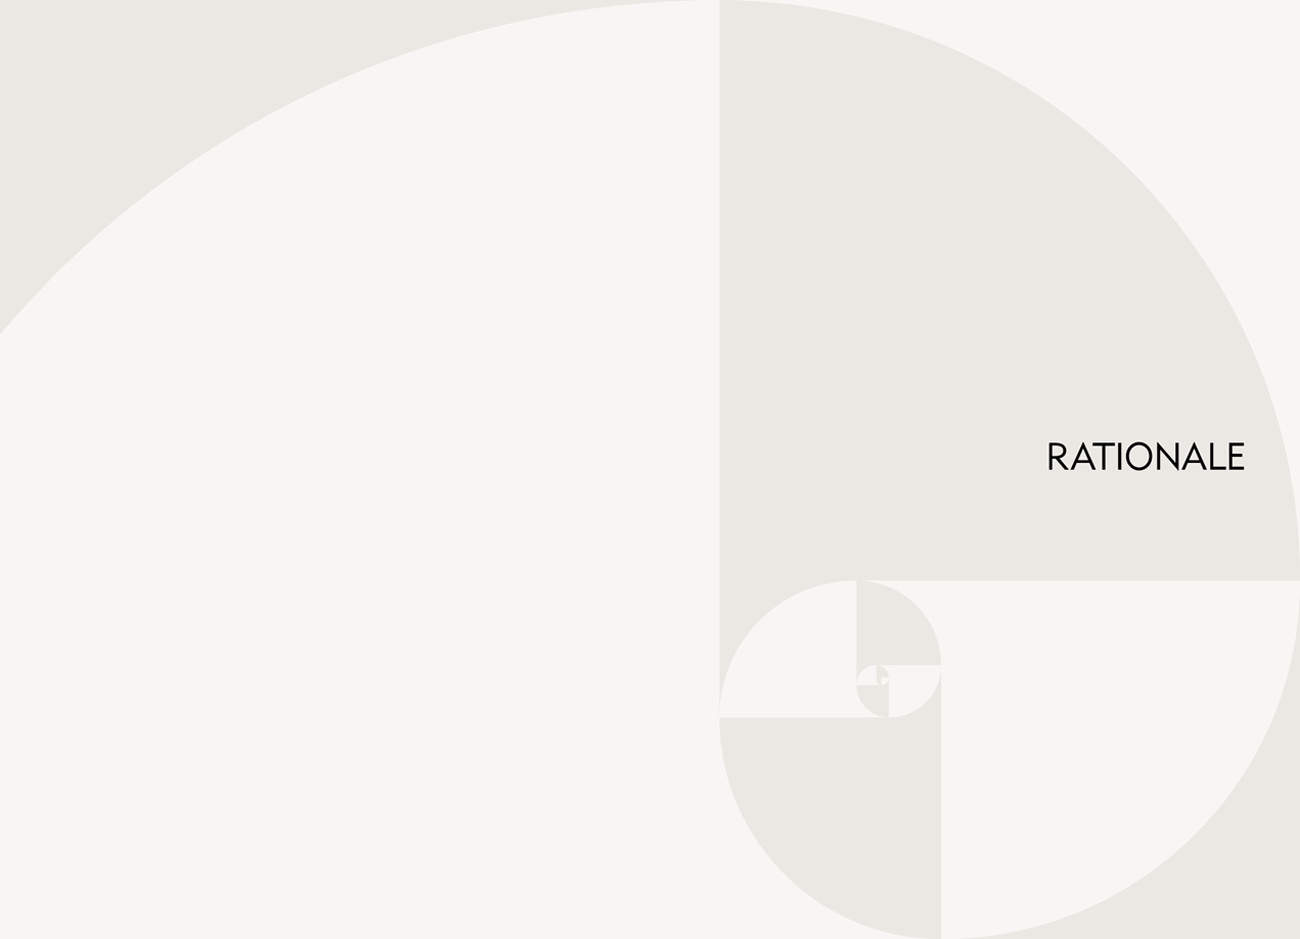 Brand Identity Document for a Feng Shui Company - Rationale Intro